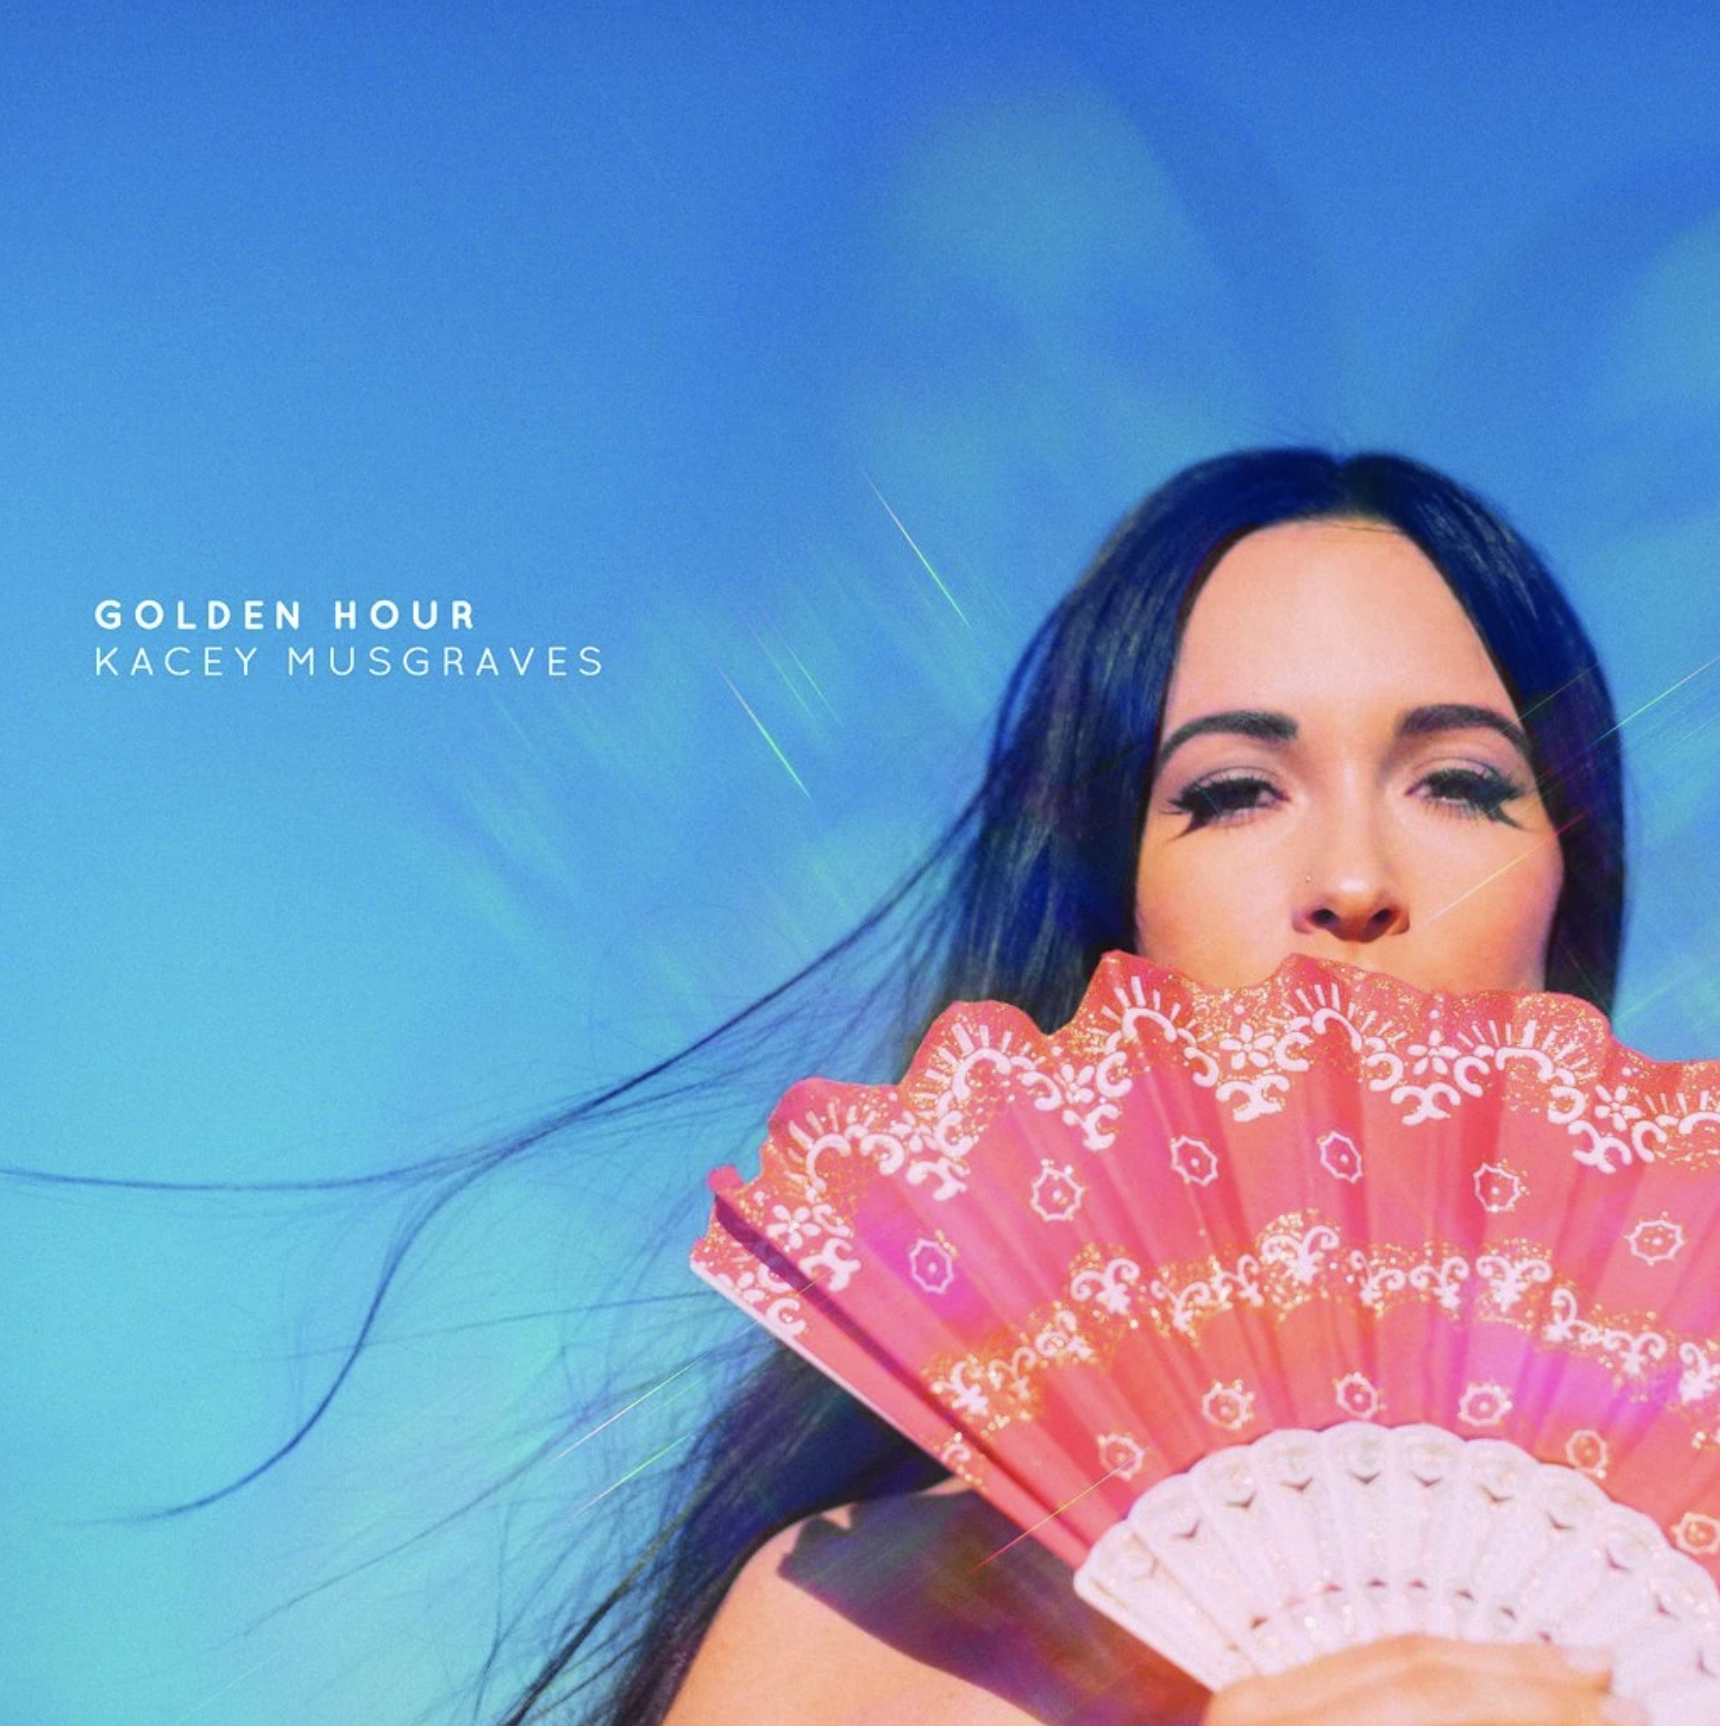 Kacey Musgraves with her hair blowing in the wind and a fan in front of her face.